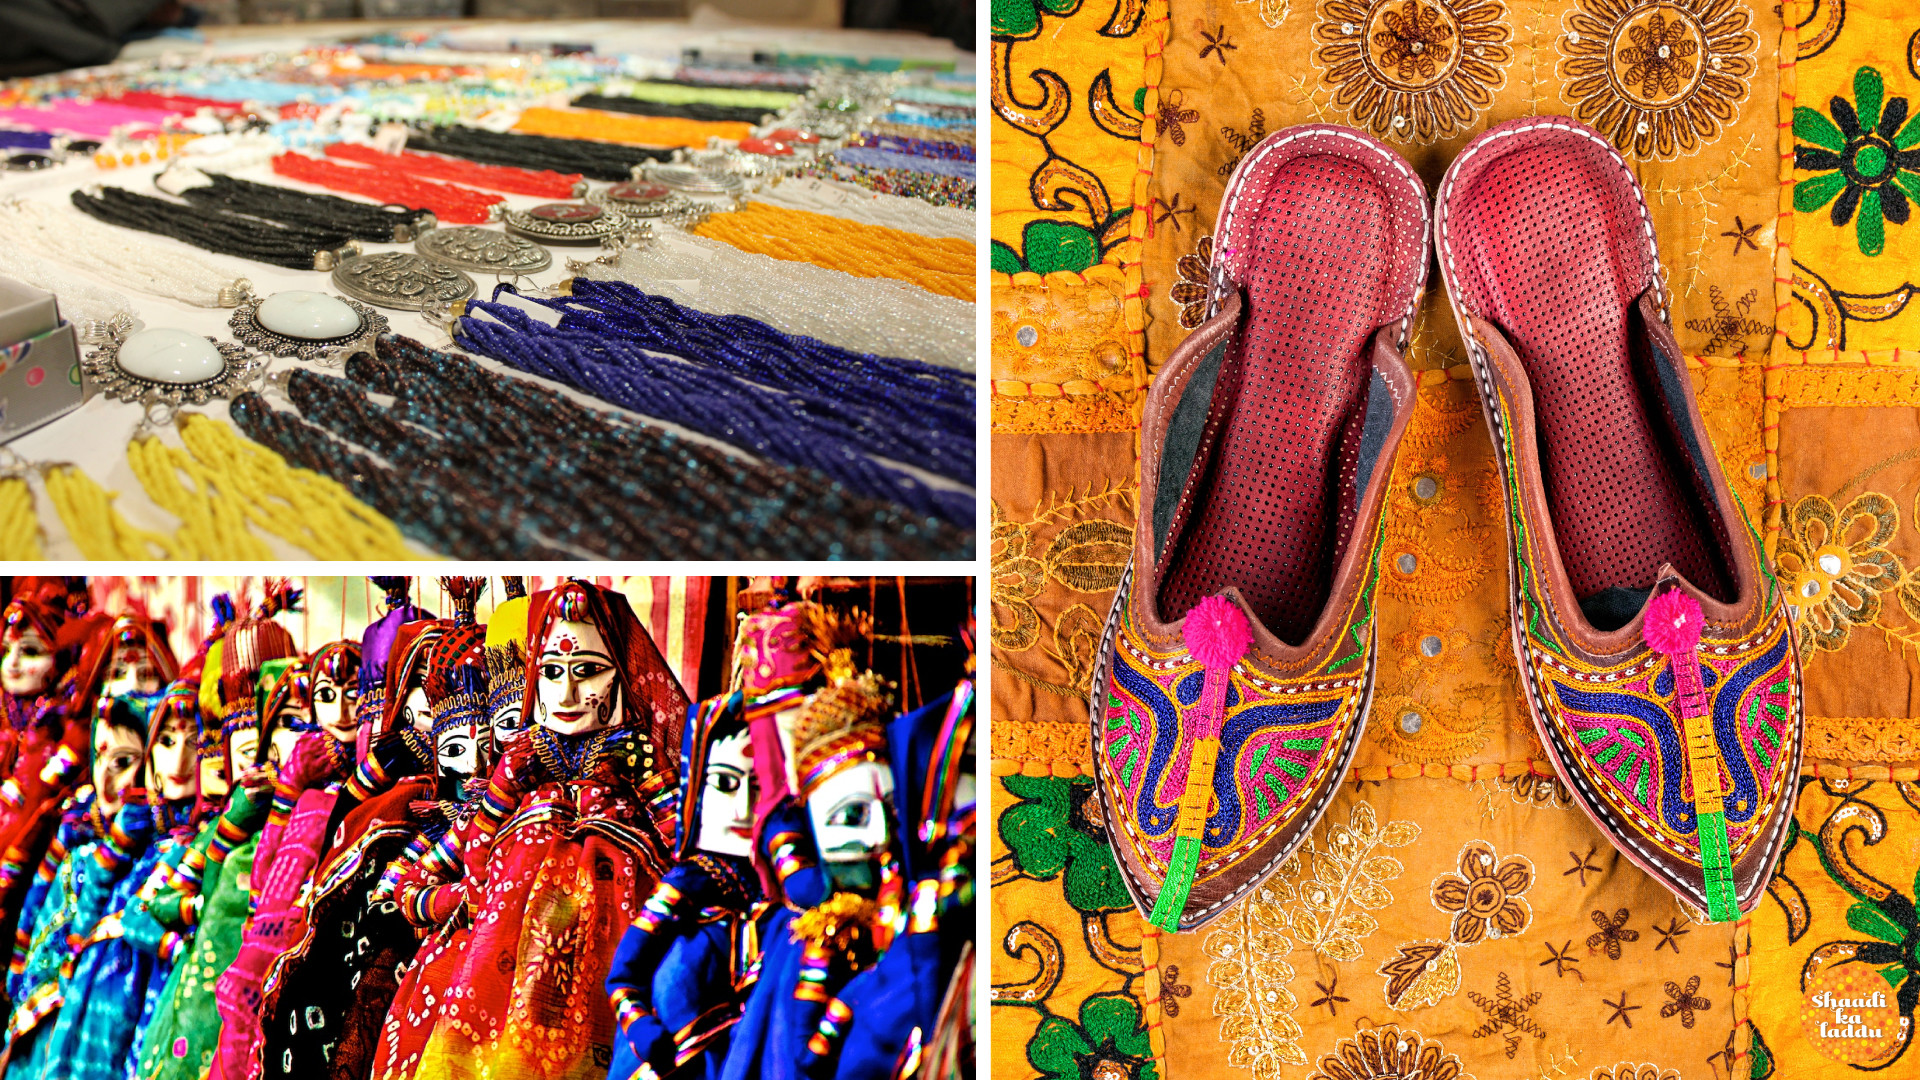 Jaipur embroidery, silver jewellery, gemstones and traditional shoes